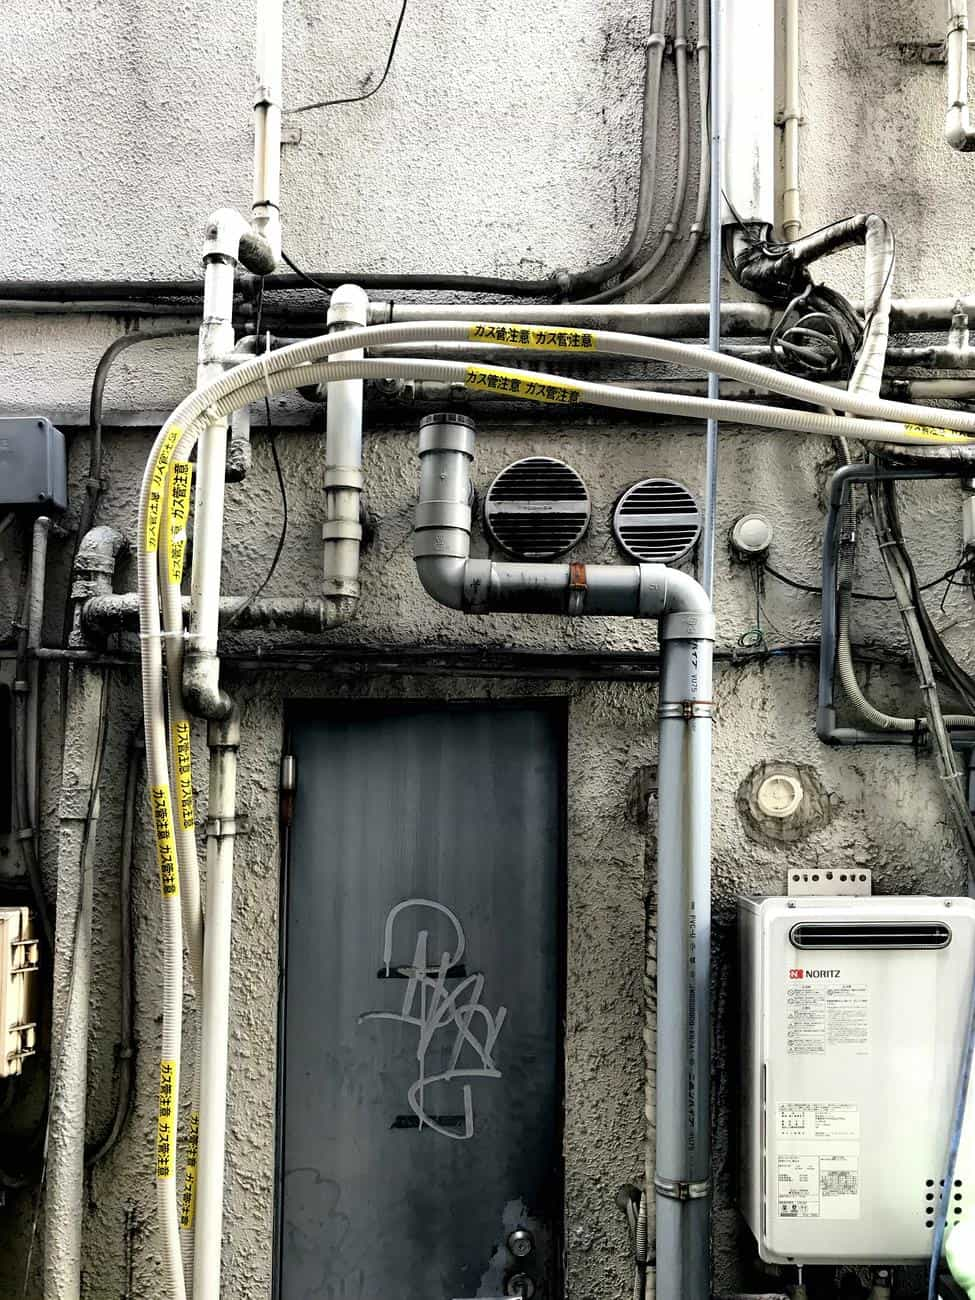 What You Need To Know Before Wiring Up Your Home. Complex wiring and pipe systems at the back of the building